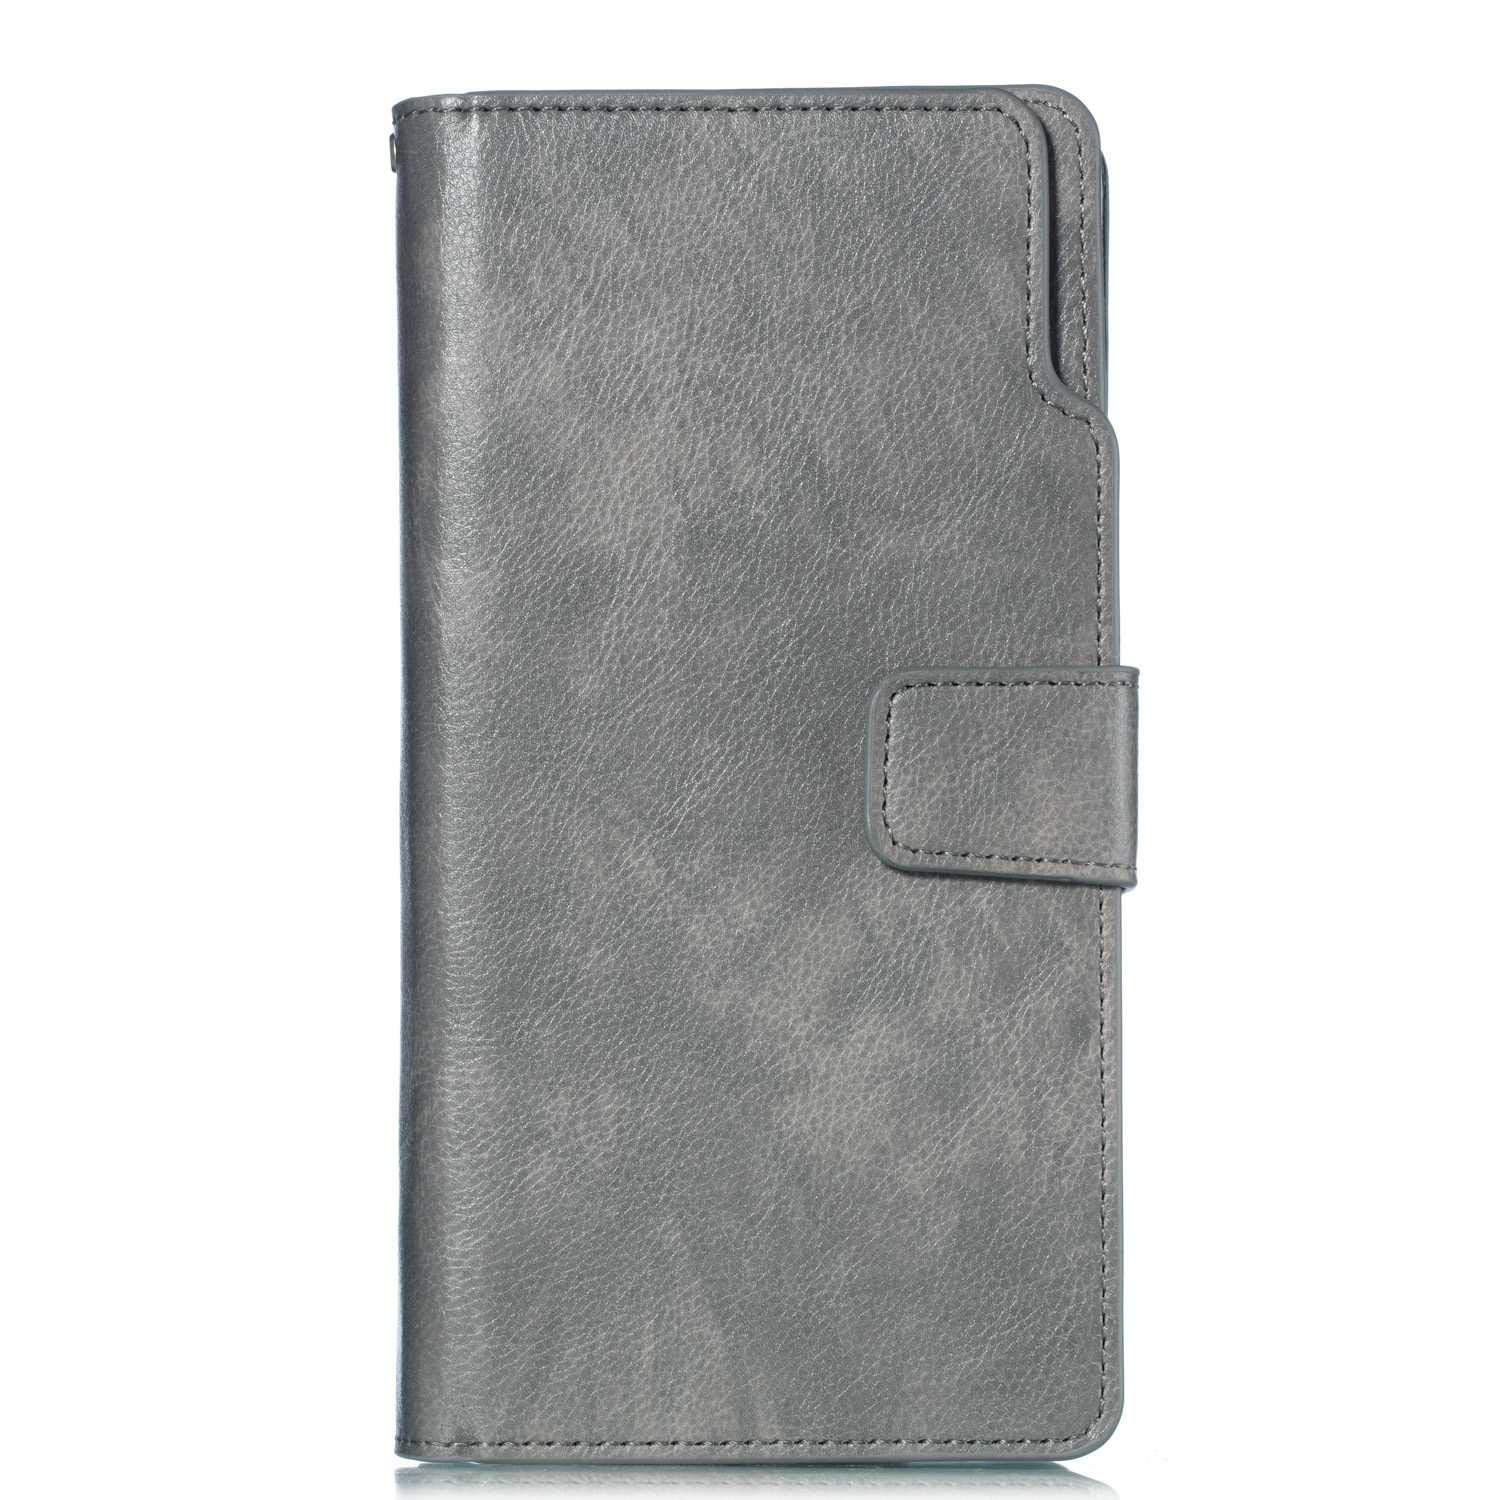 UNEXTATI Galaxy Note 8 Wallet Case, Leather Folding Flip Case with 9 Card Holder, Classic Design Protective Cover Bumper Case for Samsung Galaxy Note 8 (Grey #5)